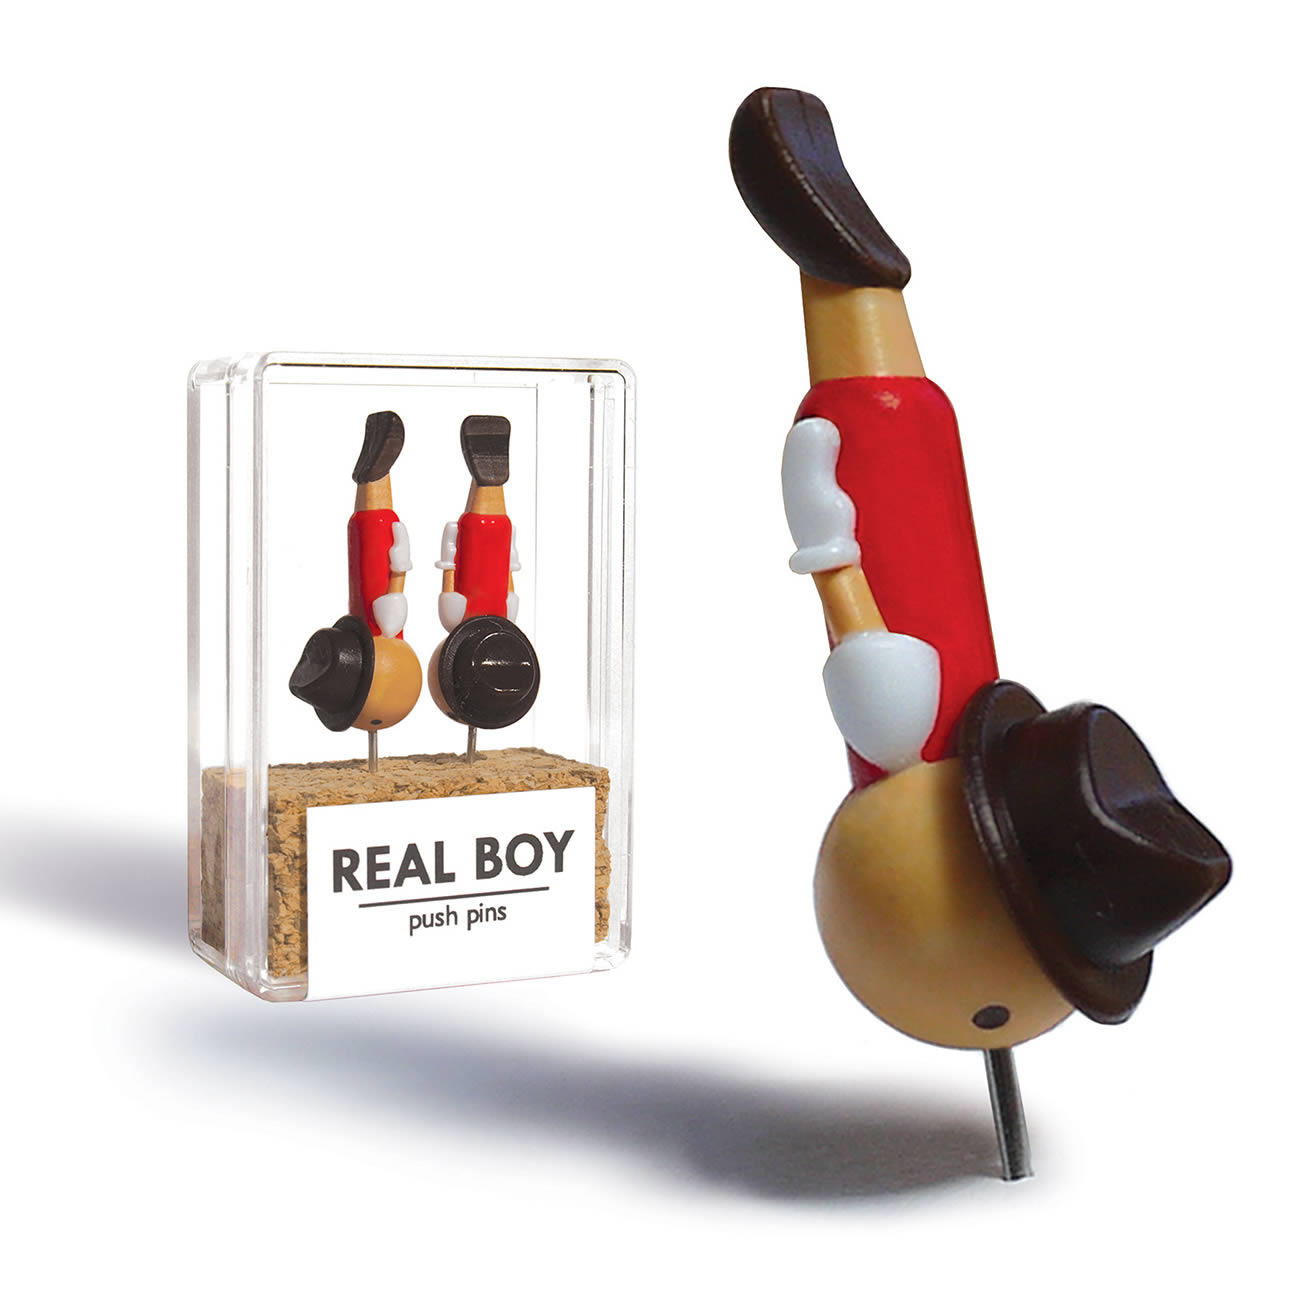 real boy by duncan shotton